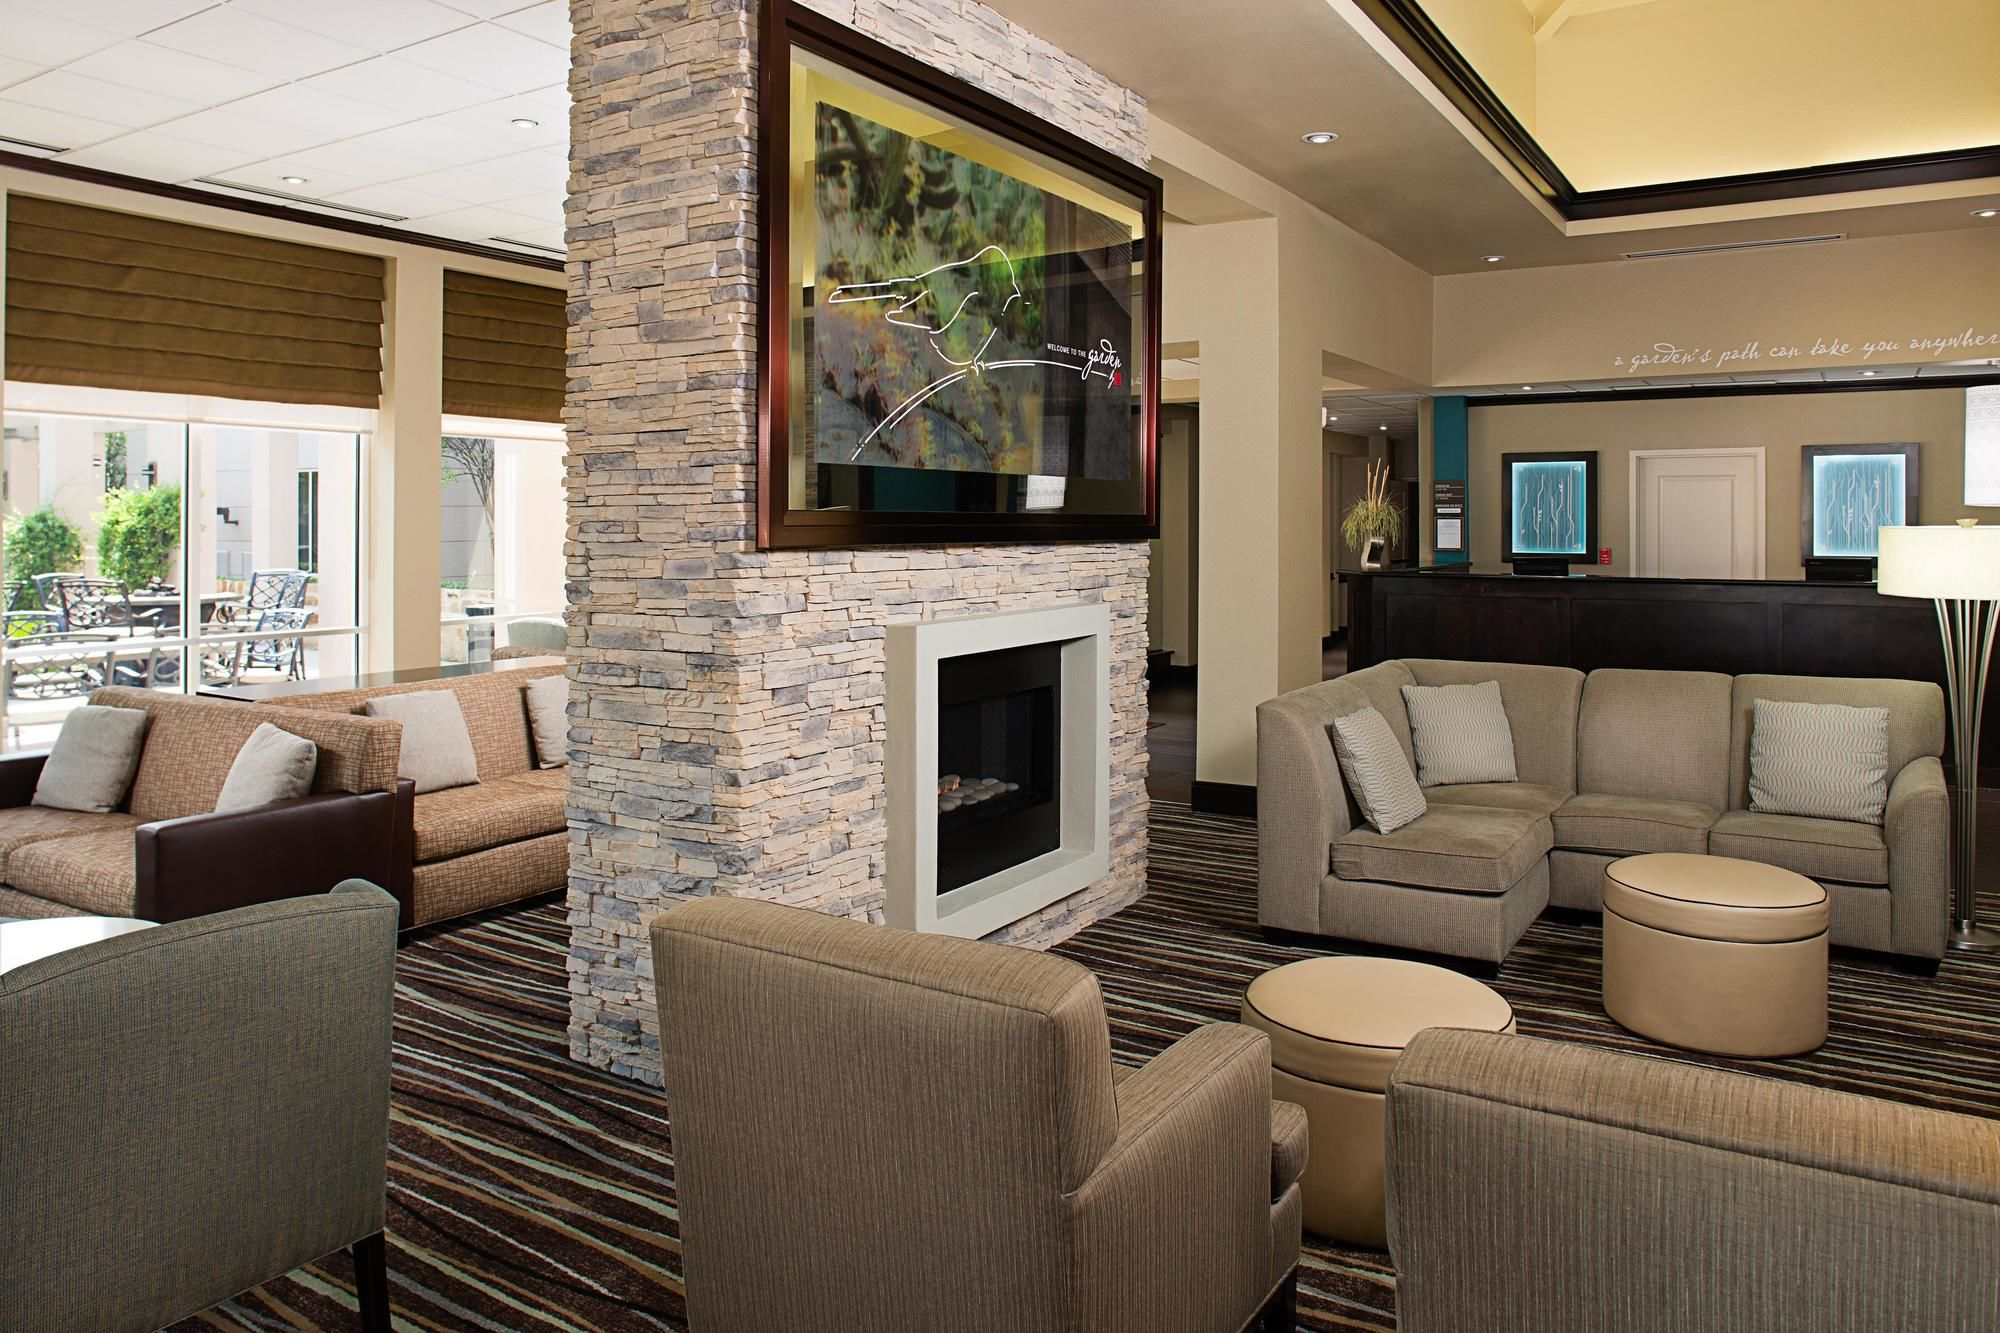 ... Tx Hilton Garden Inn DFW Airport South In Irving, Tx ...